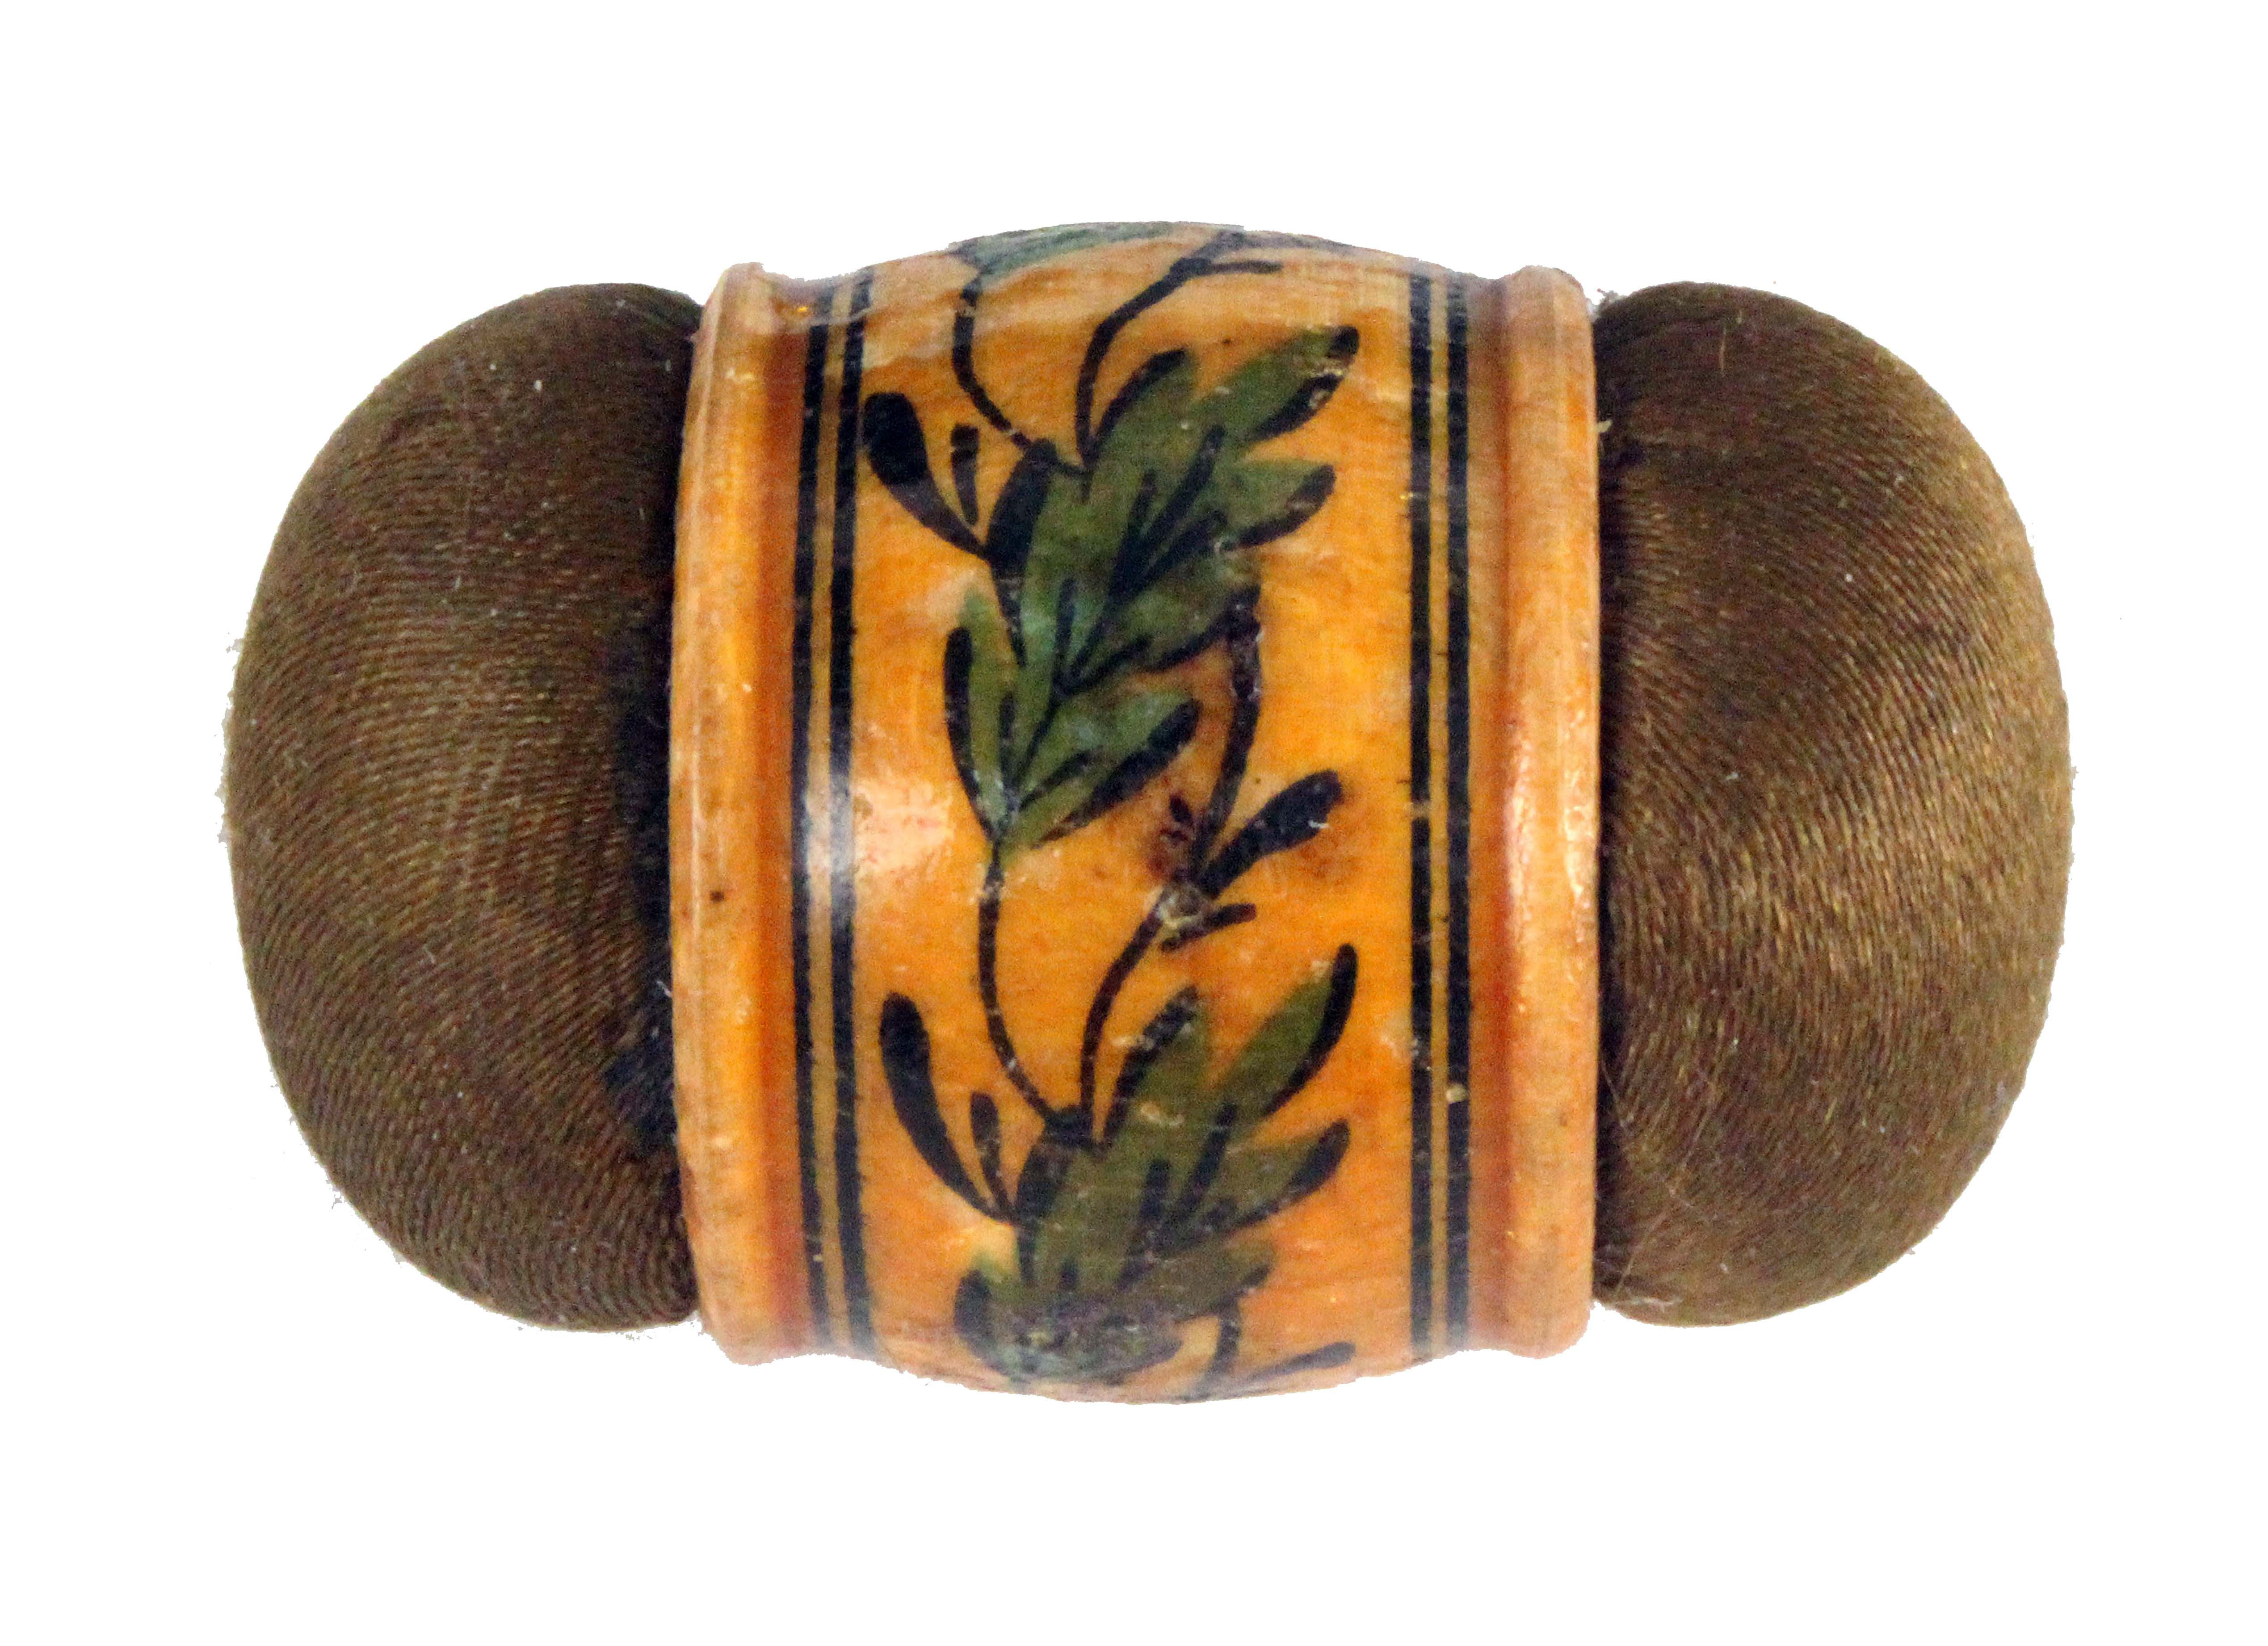 An early painted Tunbridge ware girdle form pin cushion, the girdle painted in green and black